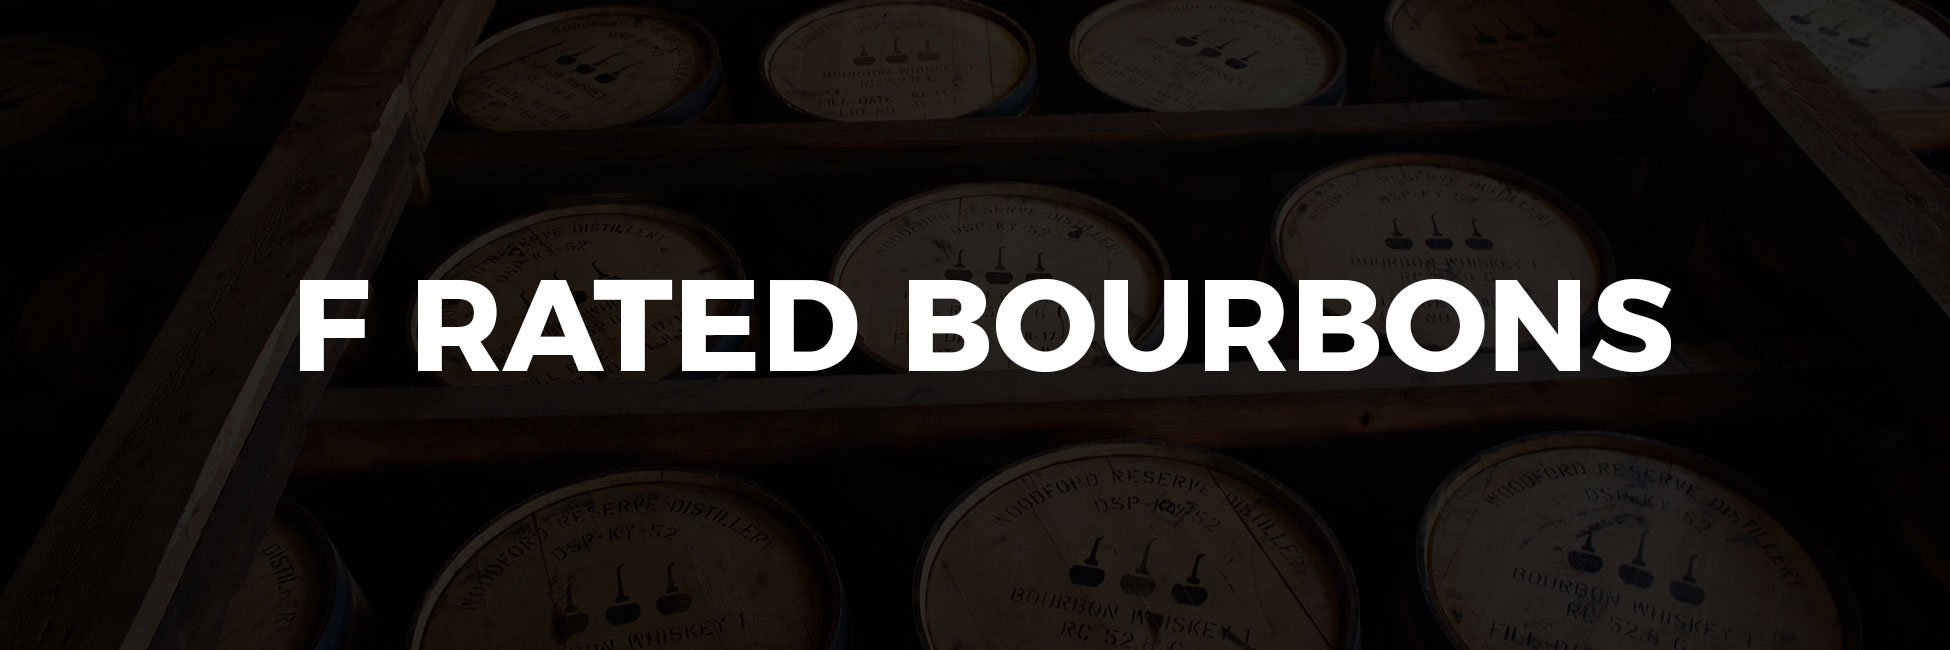 F Rated Bourbons